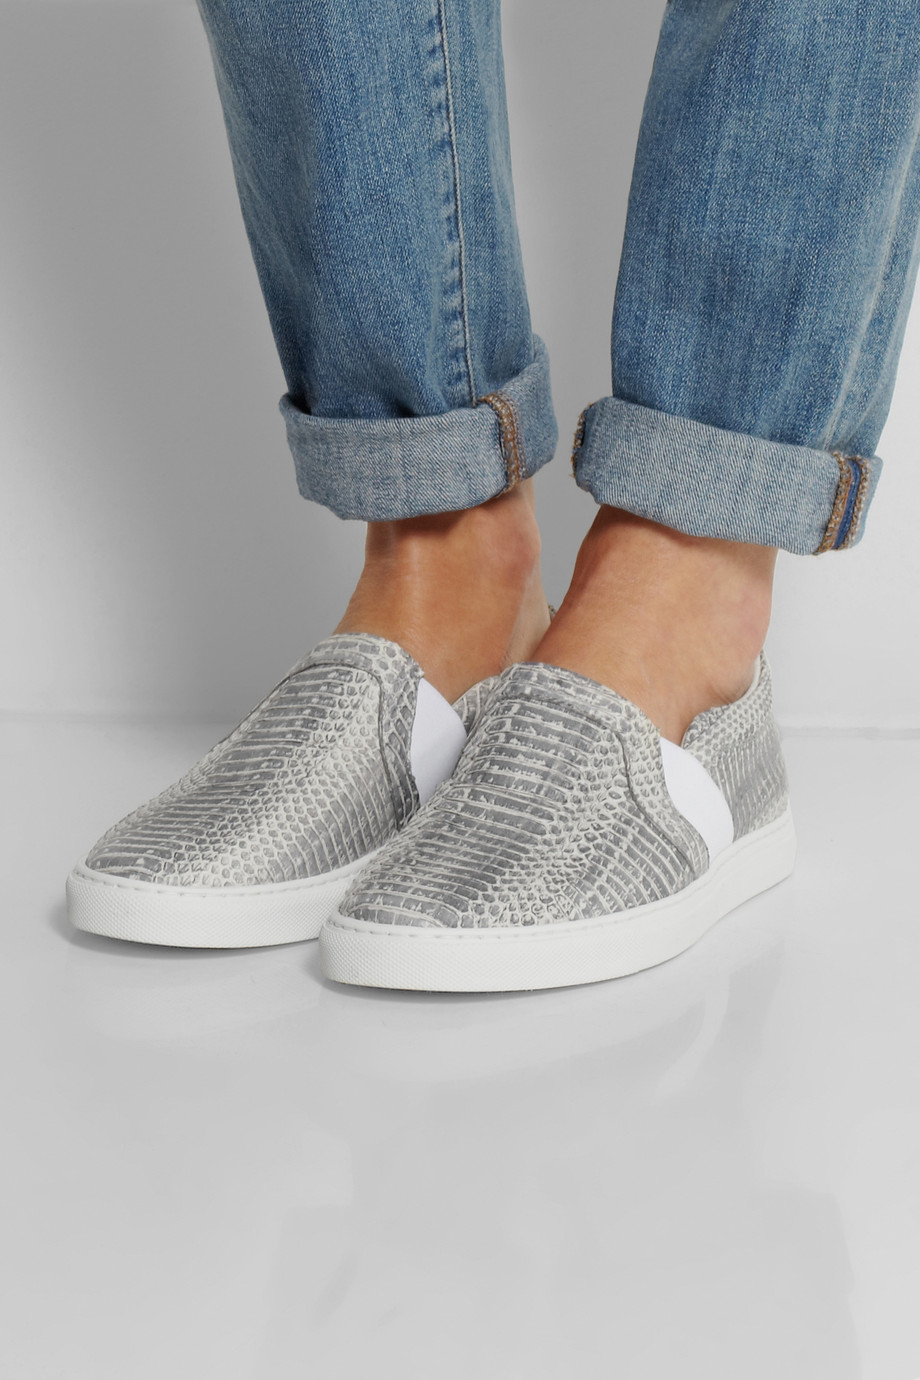 LANVIN Leather Slip-On for sale cheap authentic extremely cheap online BGtNyAea